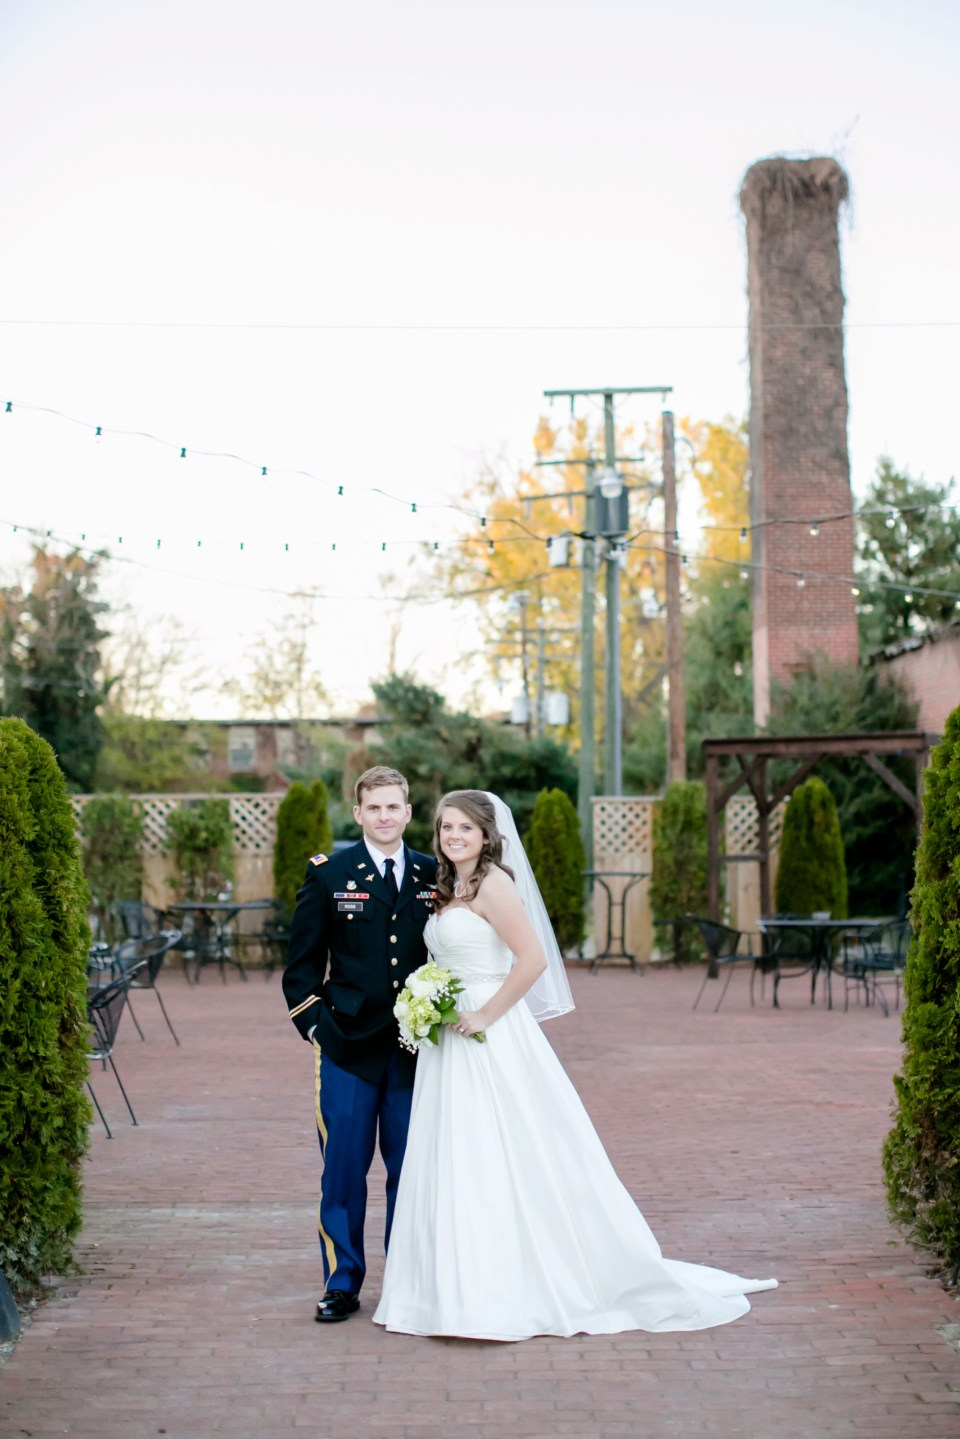 47-a-inn-at-the-olde-silk-mill-wedding-fall-ashlee-stephen-carley-rehberg-photography-1154